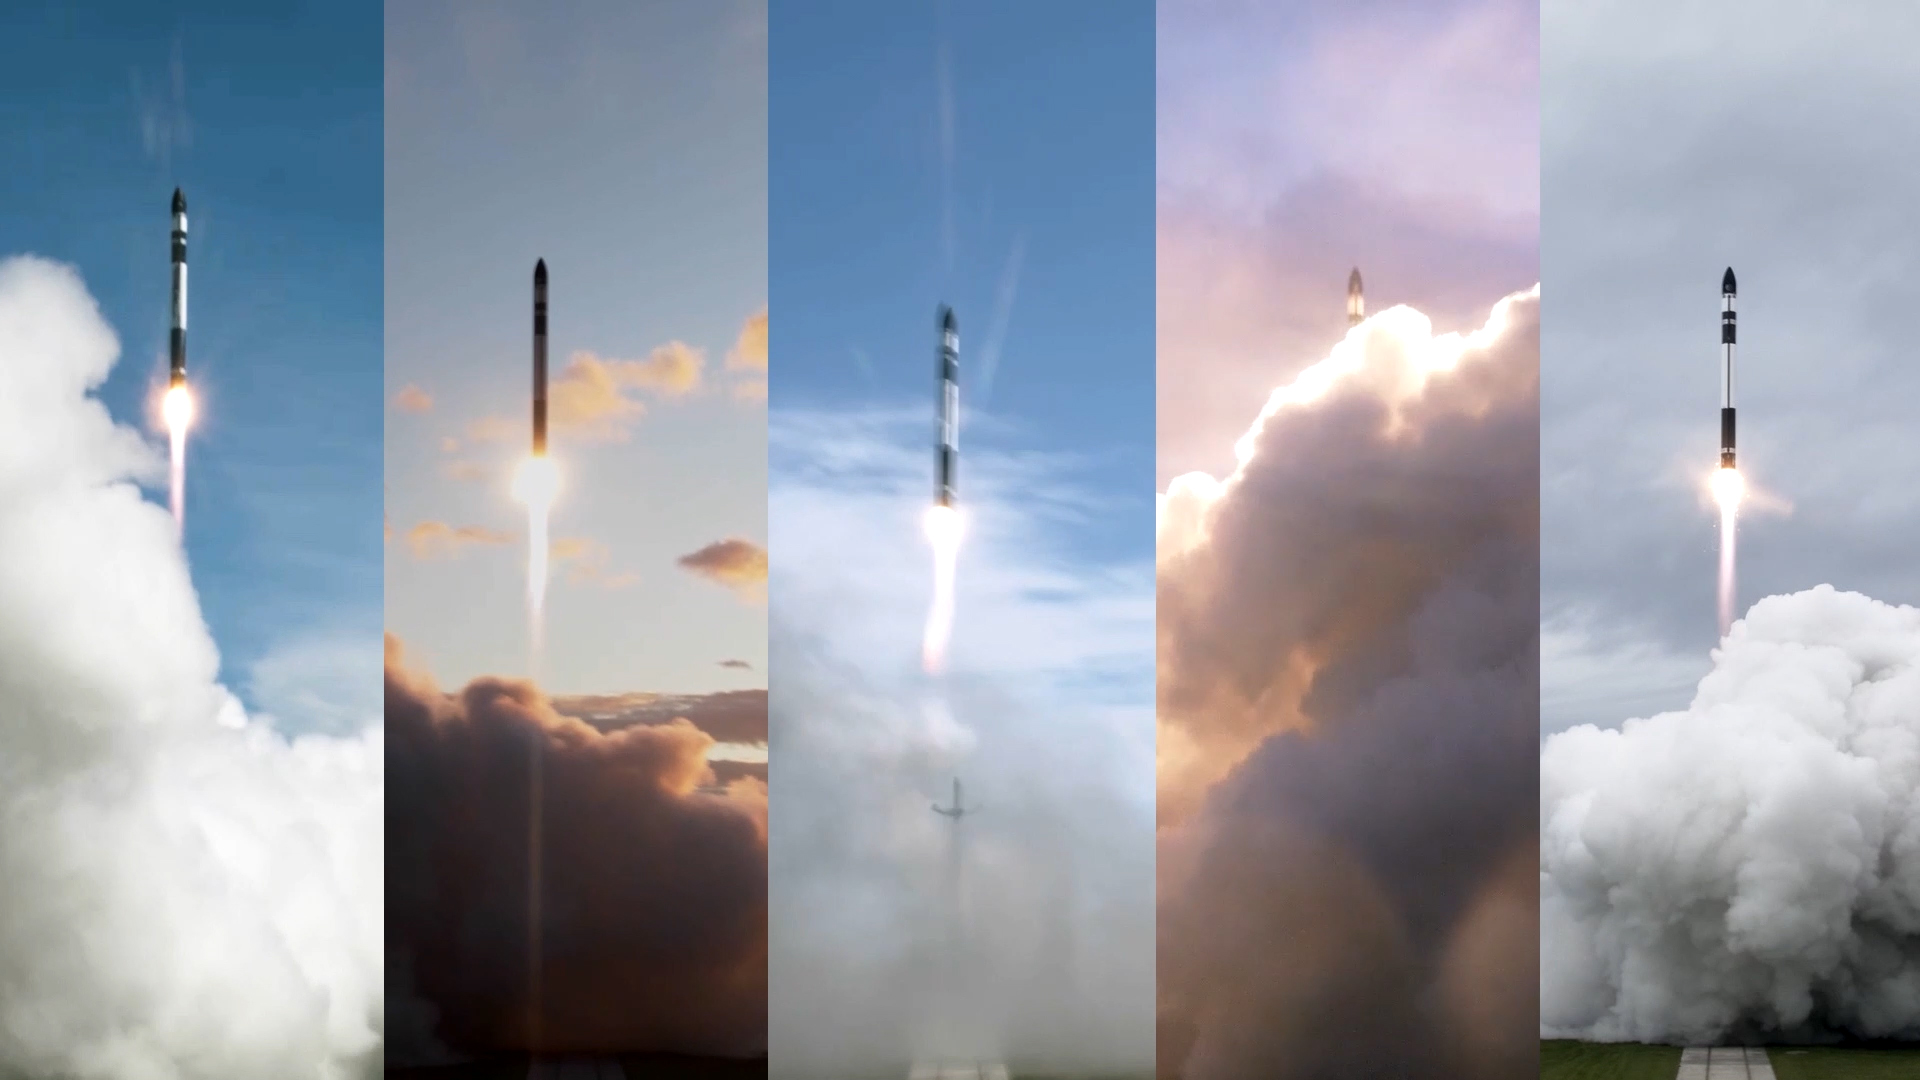 """Rocket Lab USA, Inc (""""Rocket Lab"""" or the """"Company"""") (Nasdaq: RKLB) has been awarded a contract to deploy an entire constellation of 25 satellites across five dedicated Electron missions for Kinéis, a global Internet-of-Things (IoT) connectivity provider."""